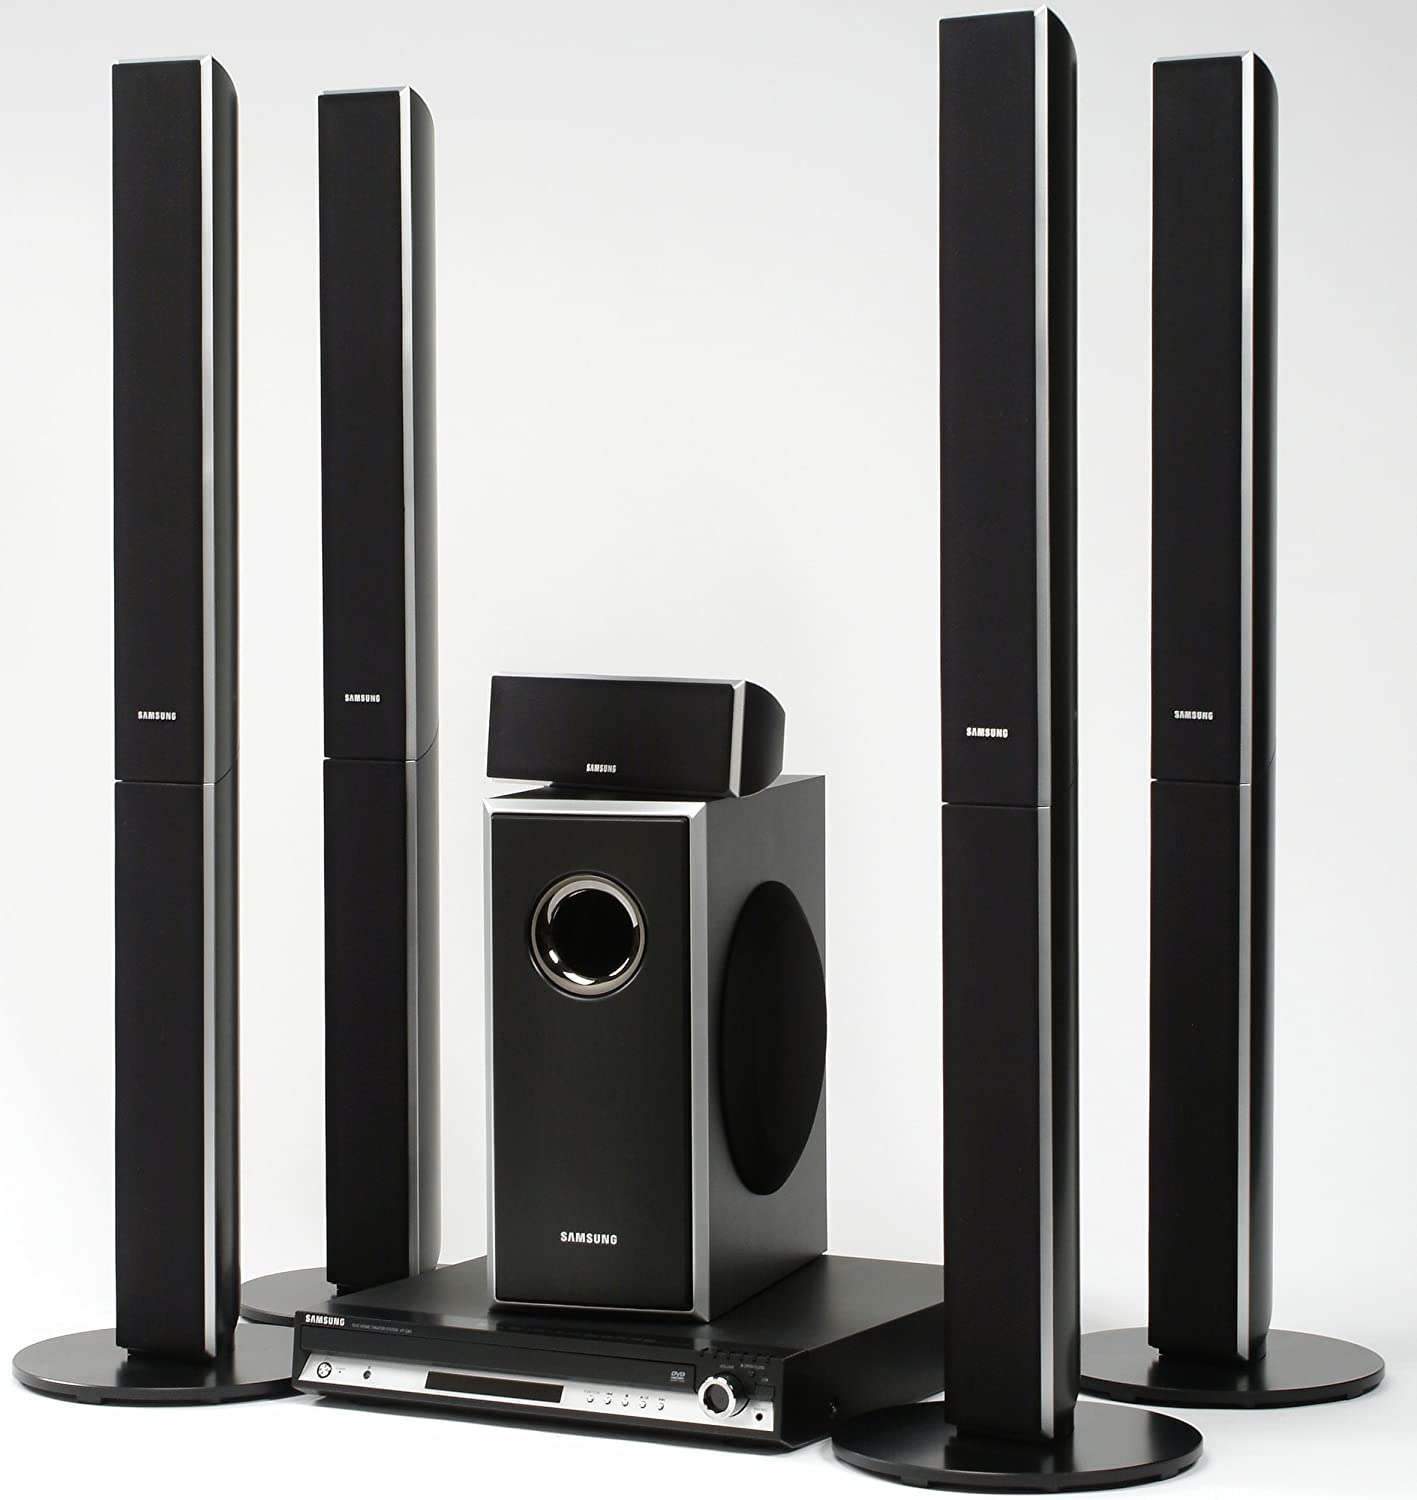 sony home theater wireless price. Amazon.com: Samsung HT-TQ85 XM-Ready Five-Disc DVD Changer Home Theater System (5.1 Channel): Electronics Sony Wireless Price